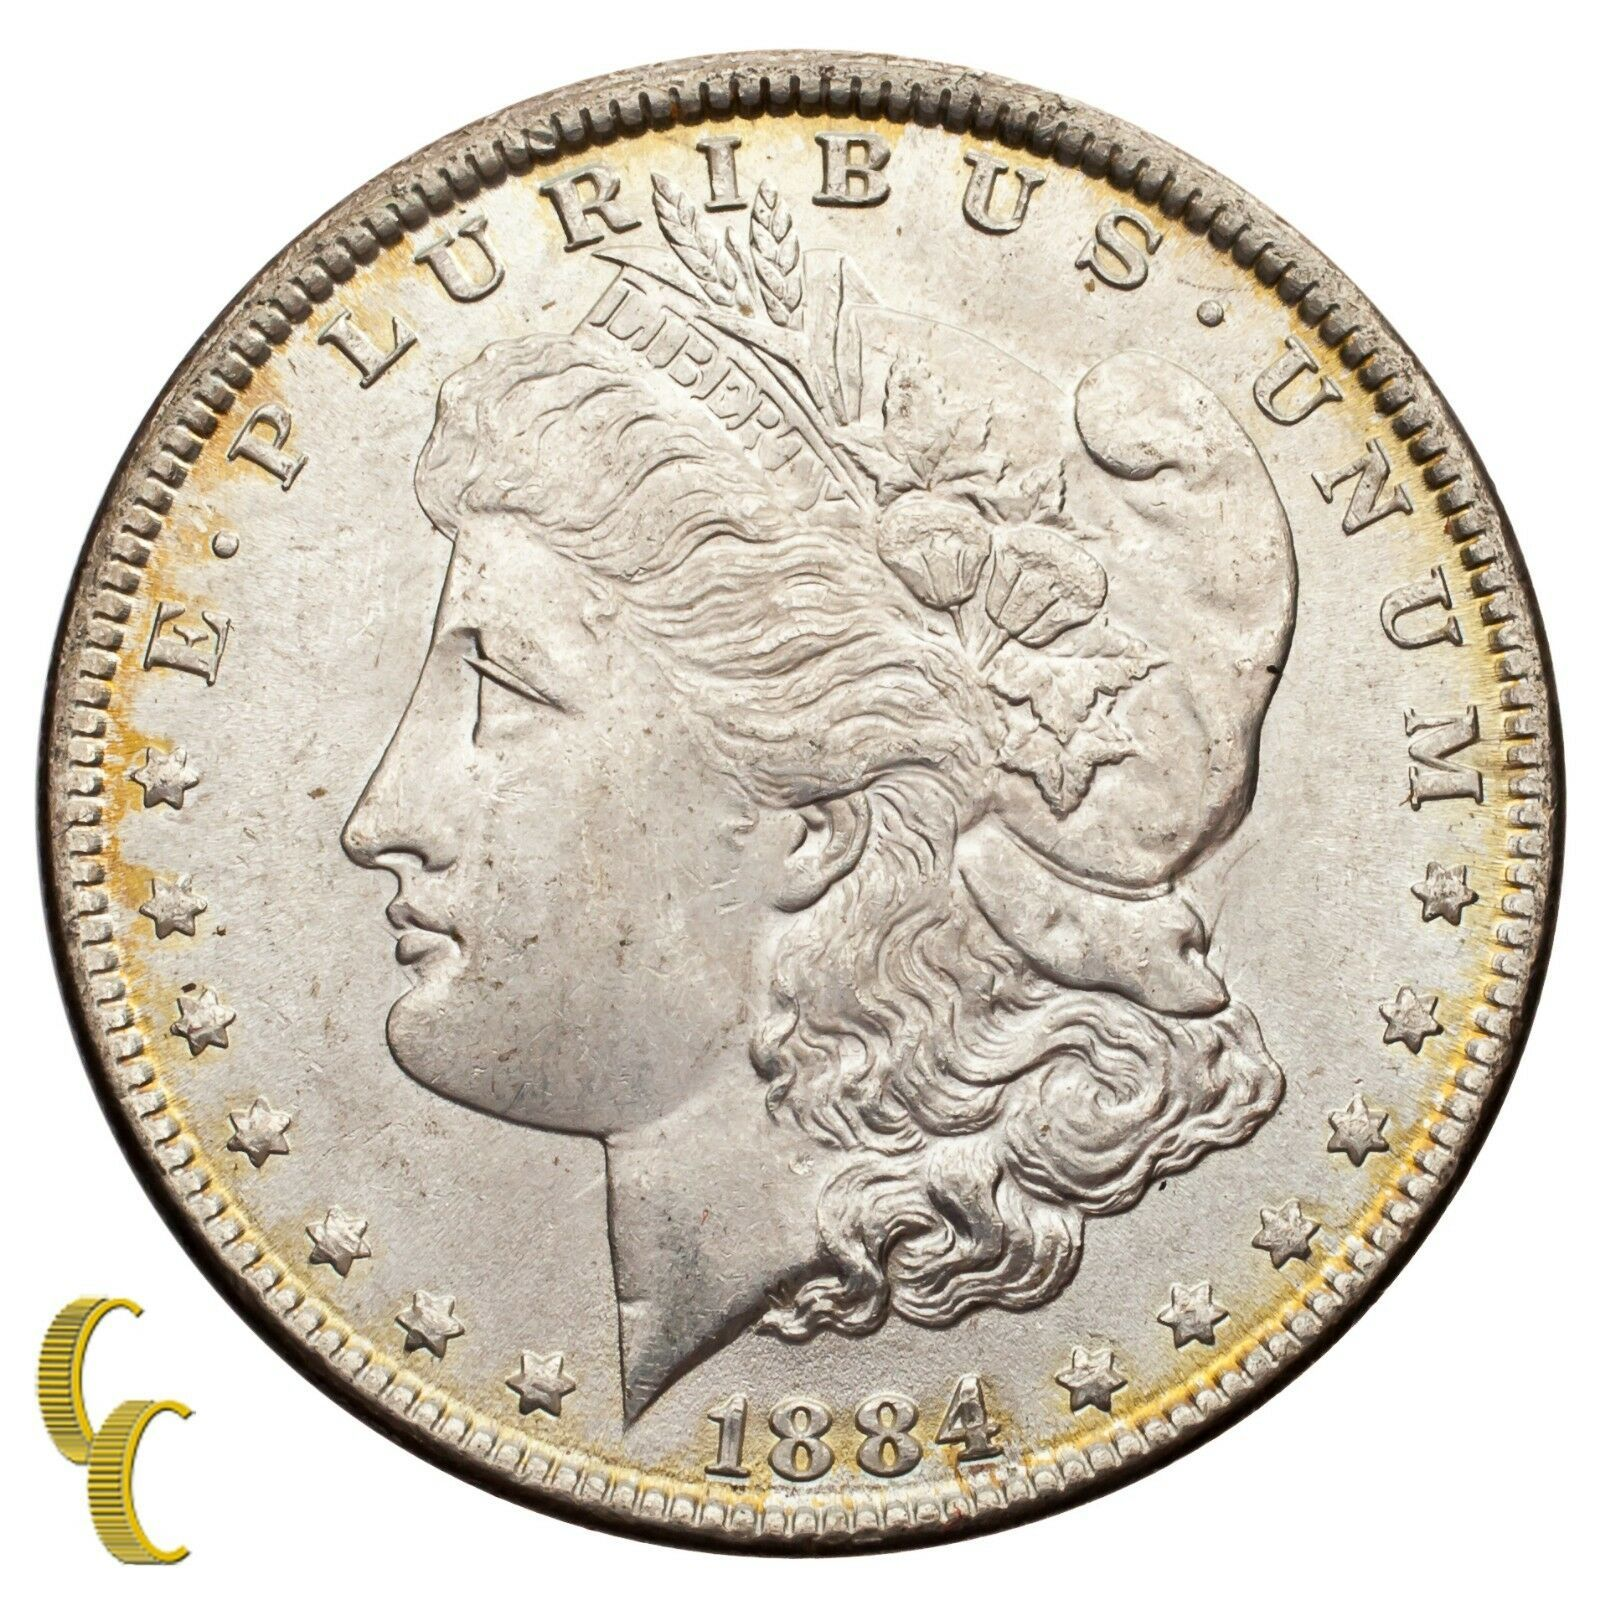 1884 Silver Morgan Dollar (Choice BU Condition) Full Mint Luster